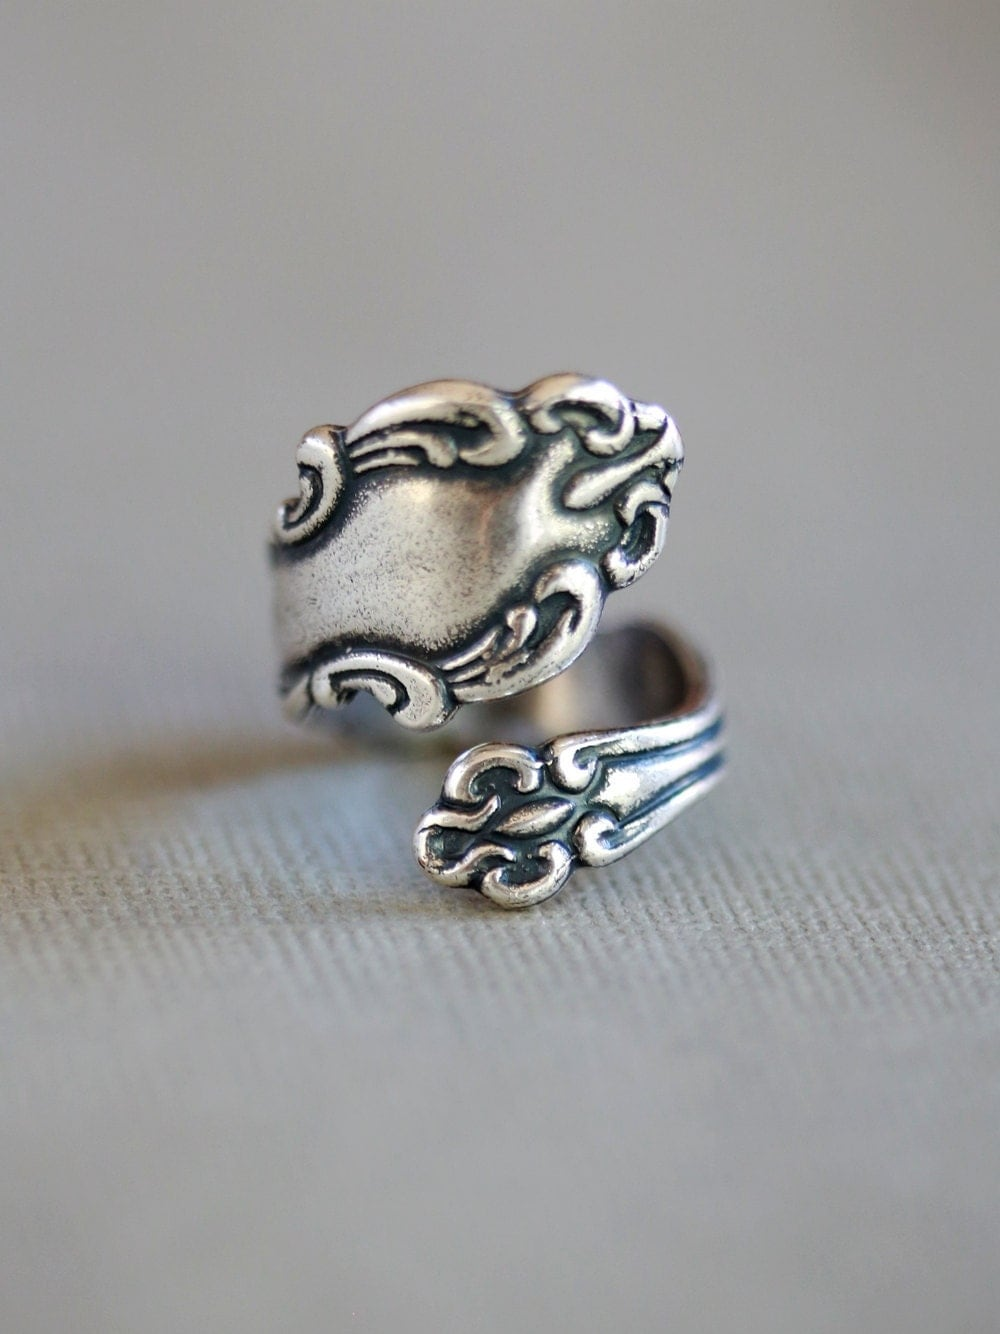 antique style spoon ring jewelry gift silver plated ring